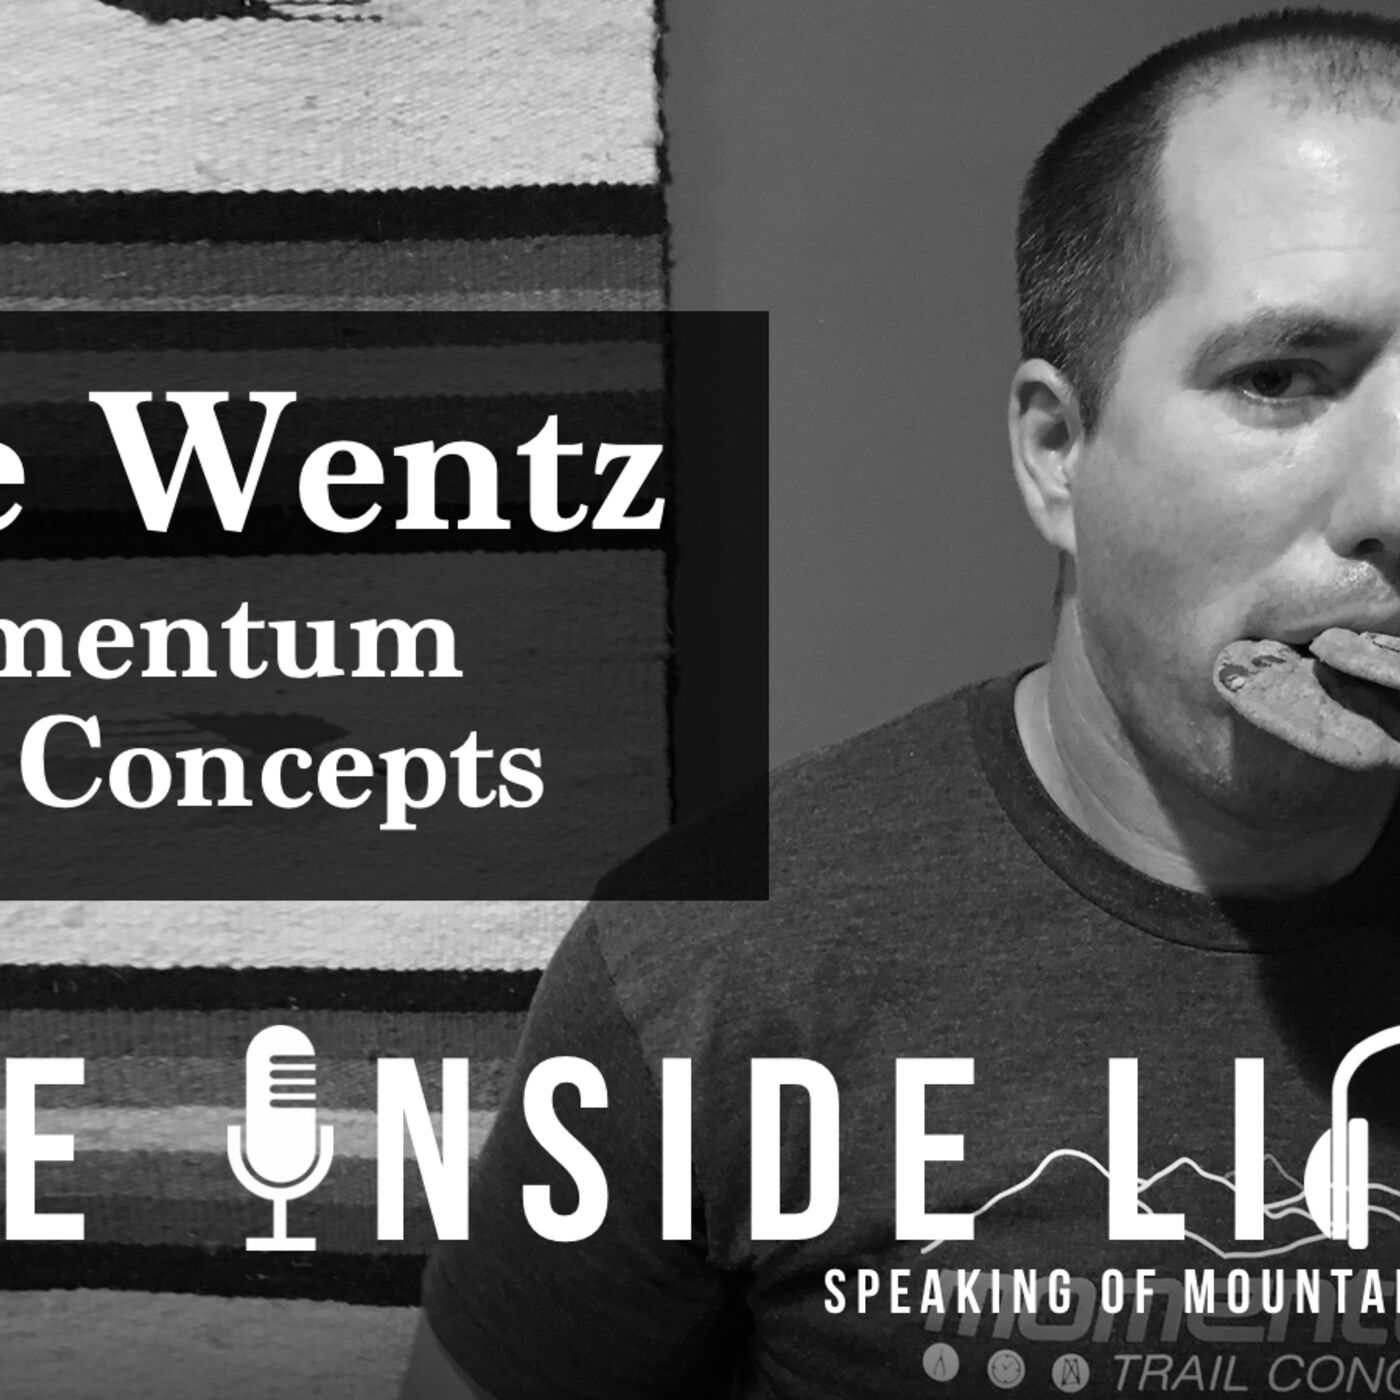 Trail Building, Back Injury and Downhill MTB - Steve Wentz of Momentum Trail Concepts - The Inside Line Podcast